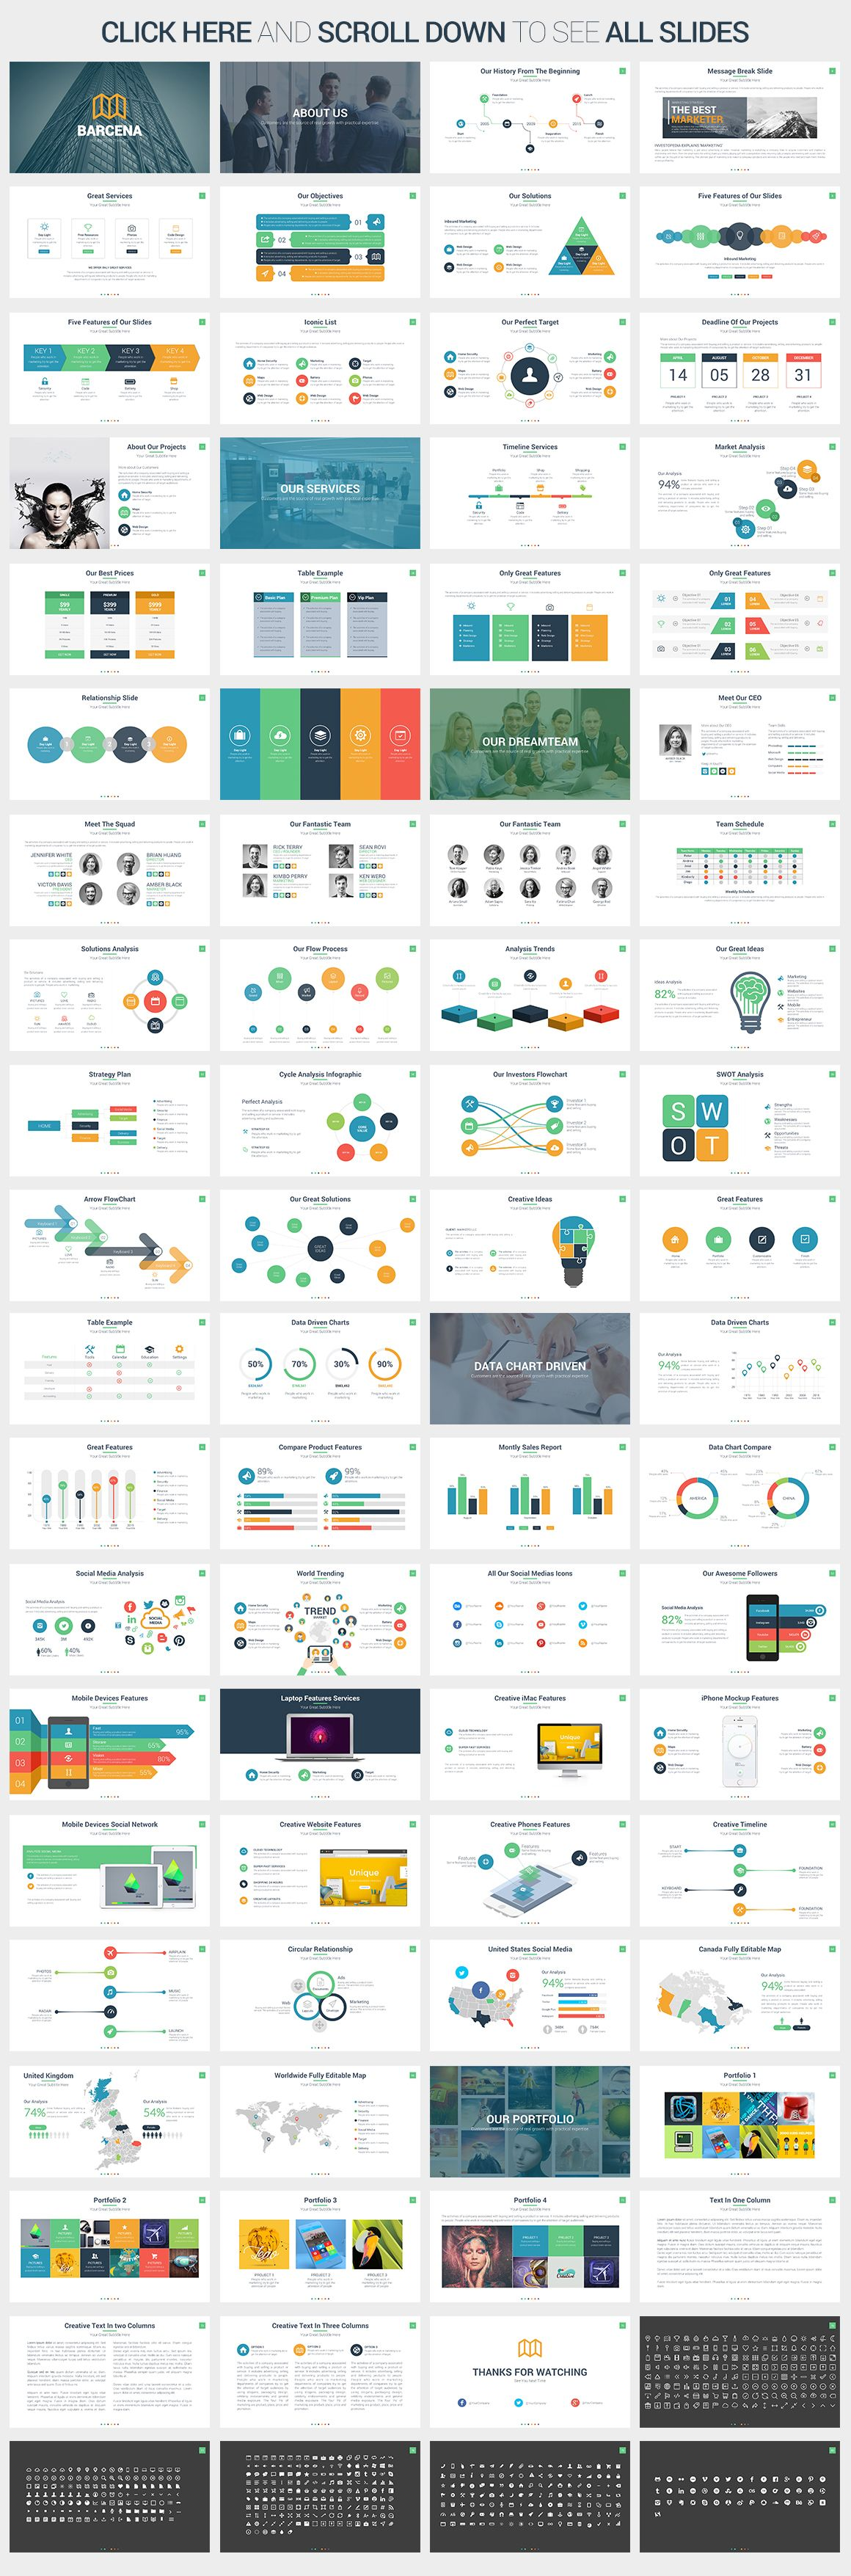 Barcena powerpoint template by slidepro on creative market barcena powerpoint template by slidepro on creative market toneelgroepblik Gallery